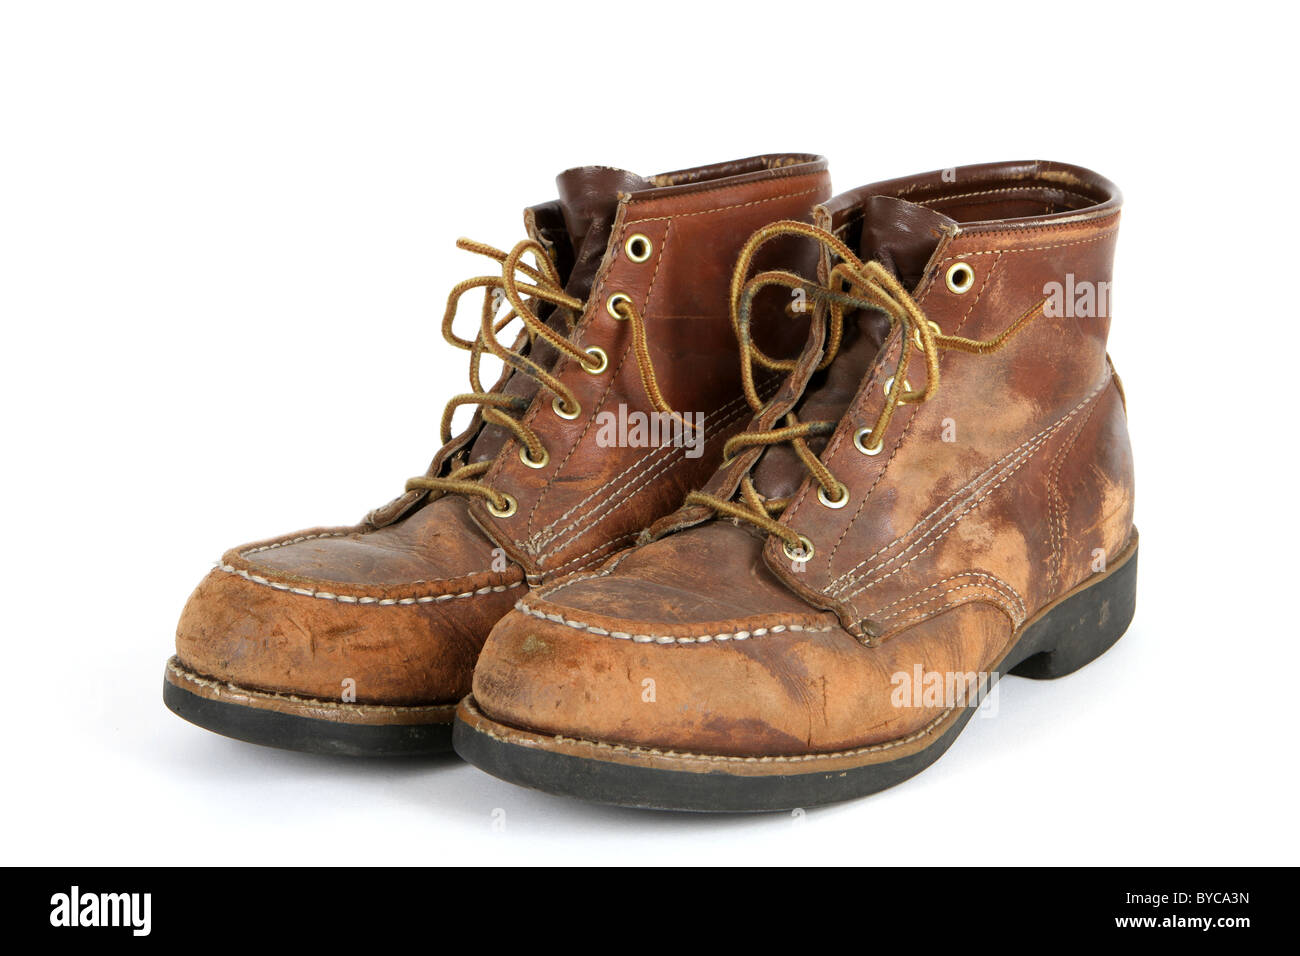 Pair of old steel toed shoes in very used condition. - Stock Image